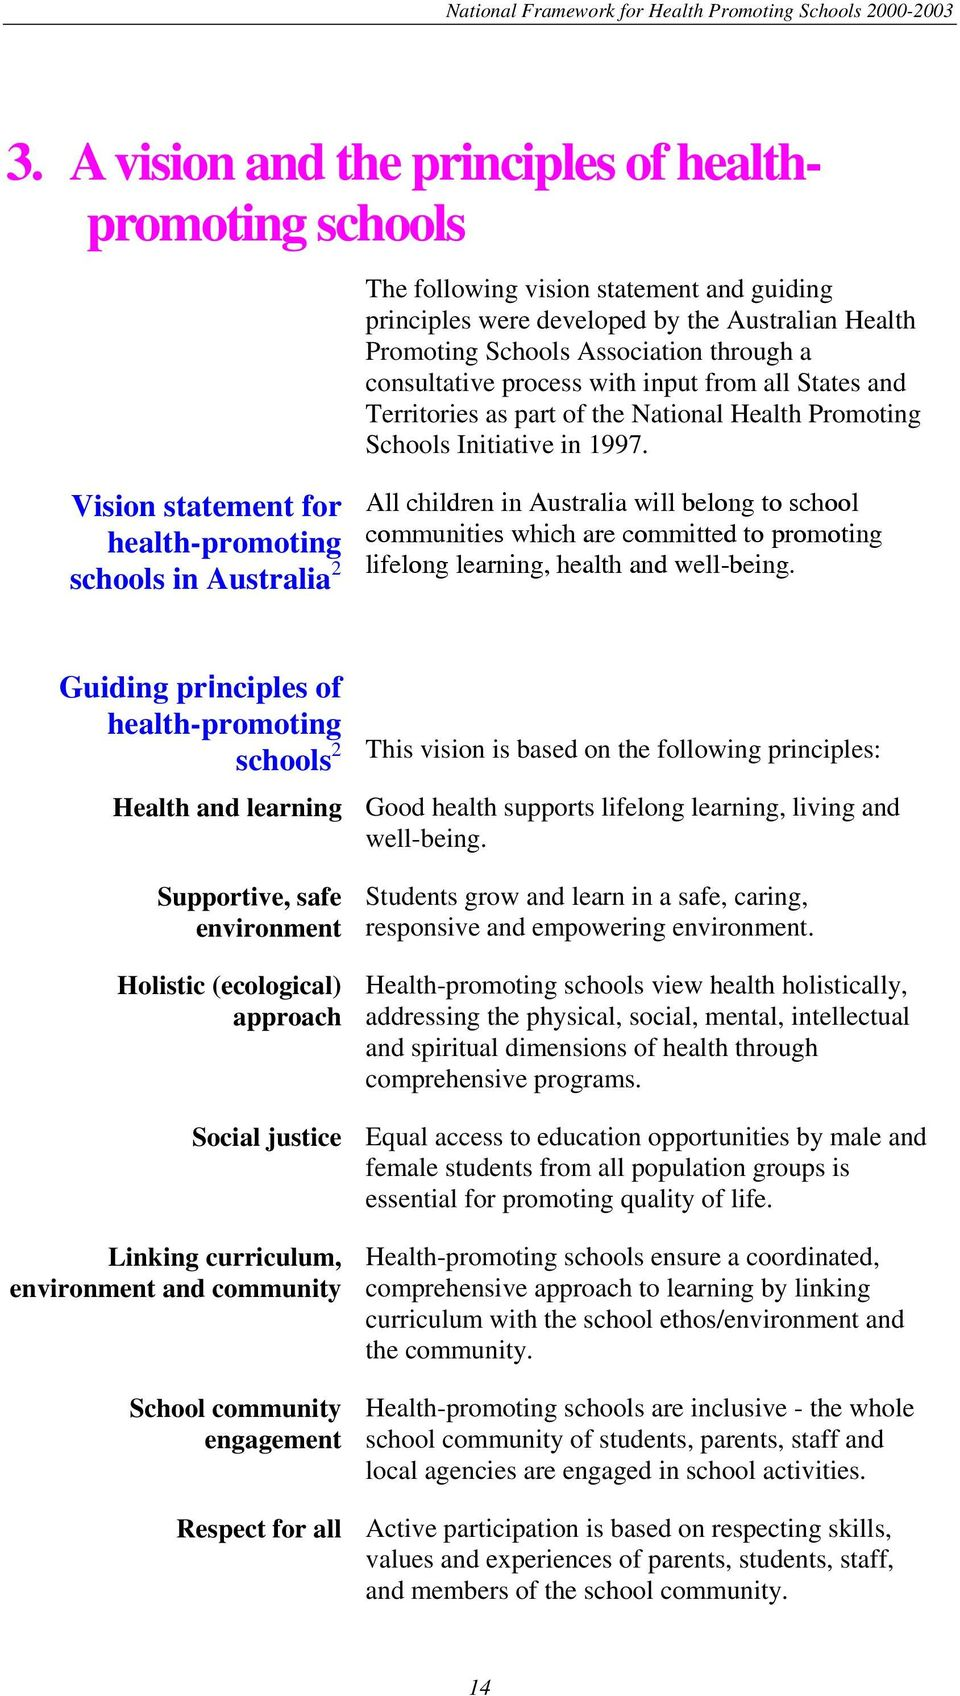 Vision statement for health-promoting schools in Australia 2 All children in Australia will belong to school communities which are committed to promoting lifelong learning, health and well-being.